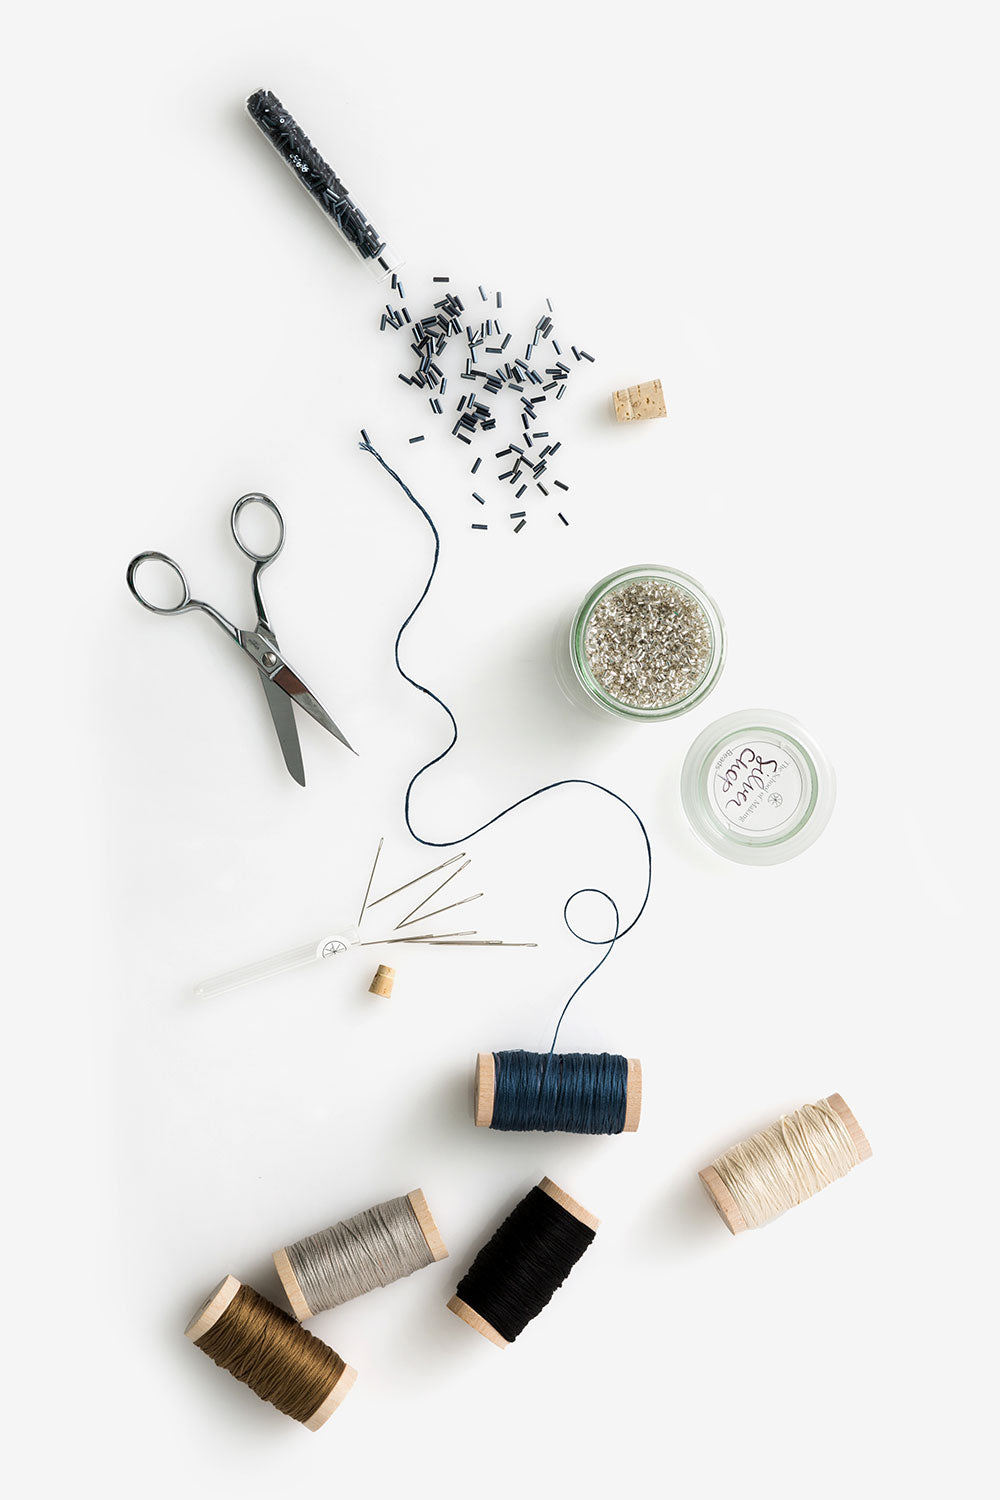 The School of Making Three Day Workshop Maker Supplies for DIY Projects